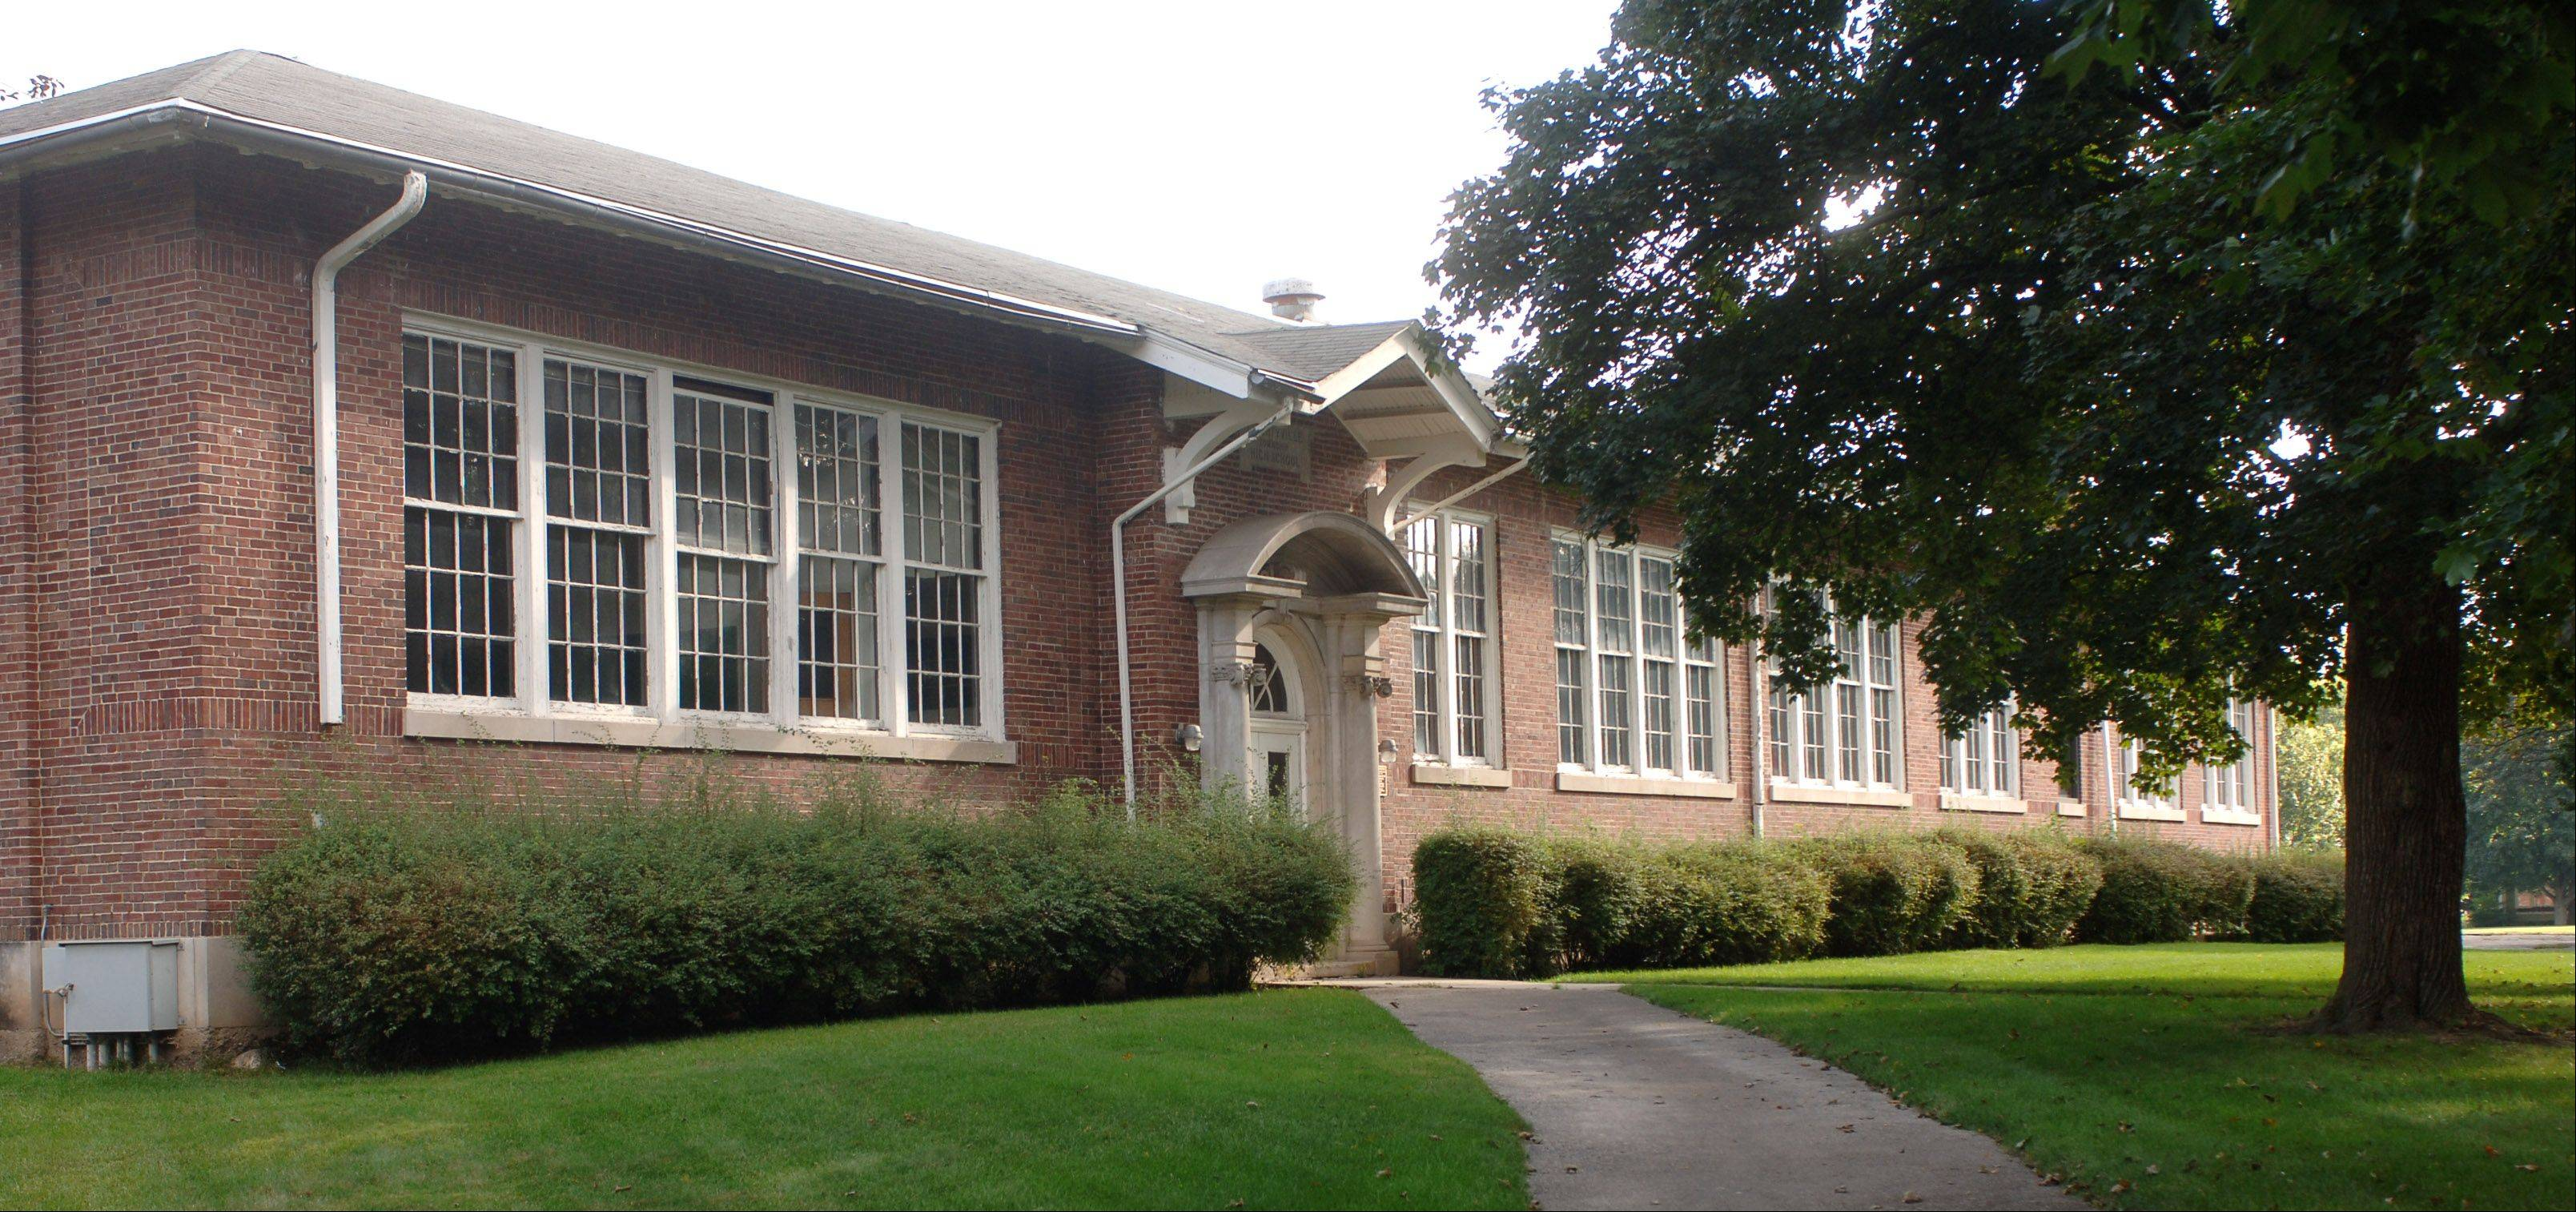 A volunteer group wants to turn the long-closed Brainerd school building in Libertyville into a community center.